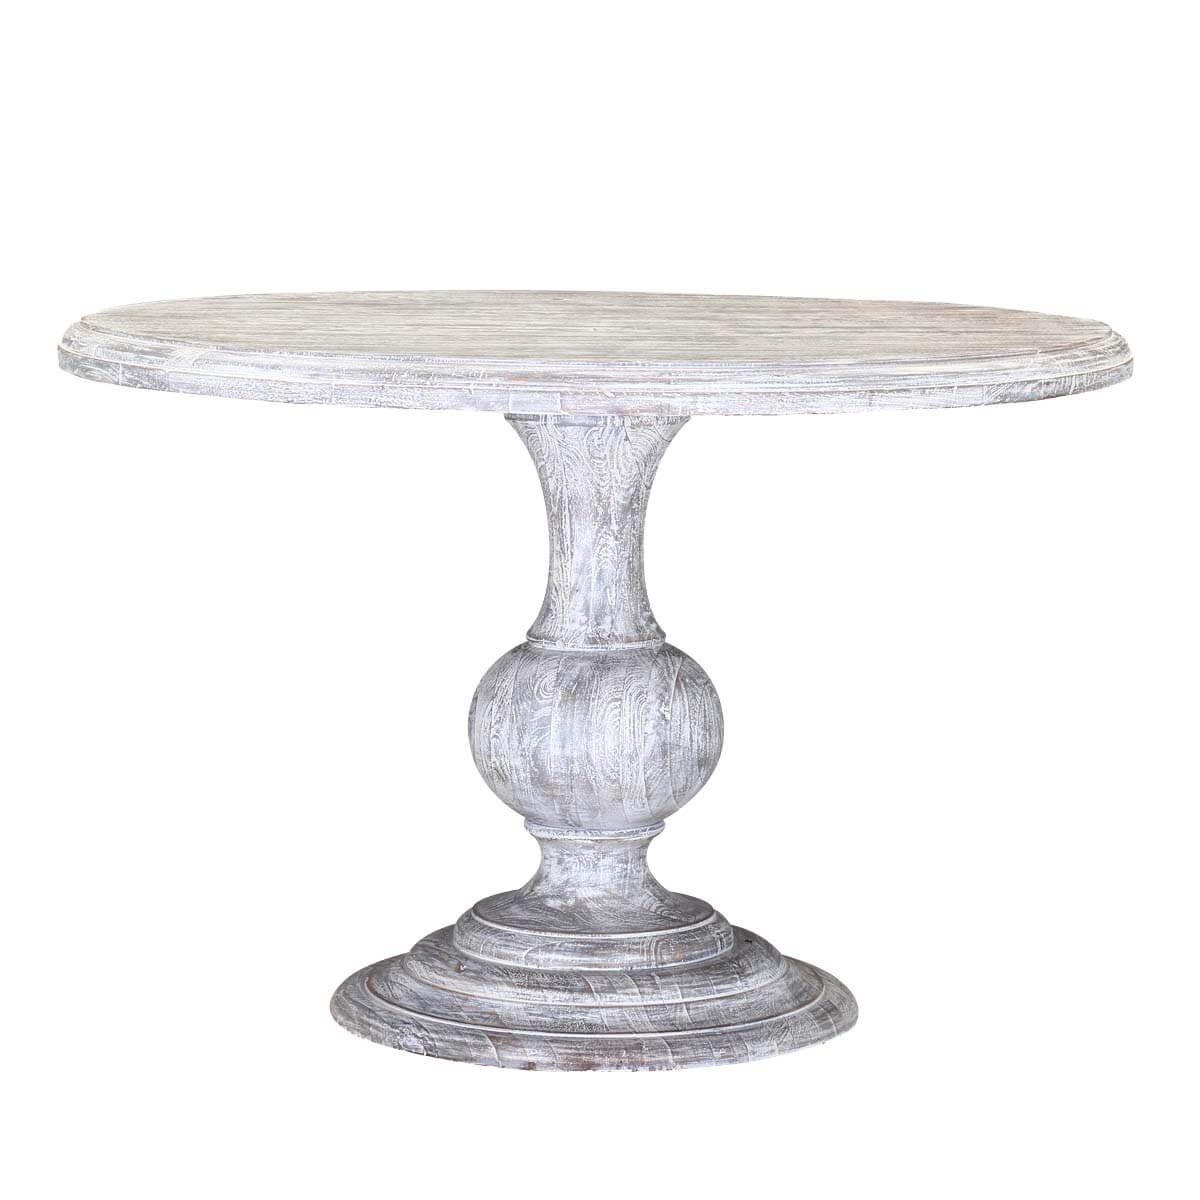 Winter White Mango Wood 48 Round Pedestal Dining Table : 83262 from www.sierralivingconcepts.com size 1200 x 1200 jpeg 83kB